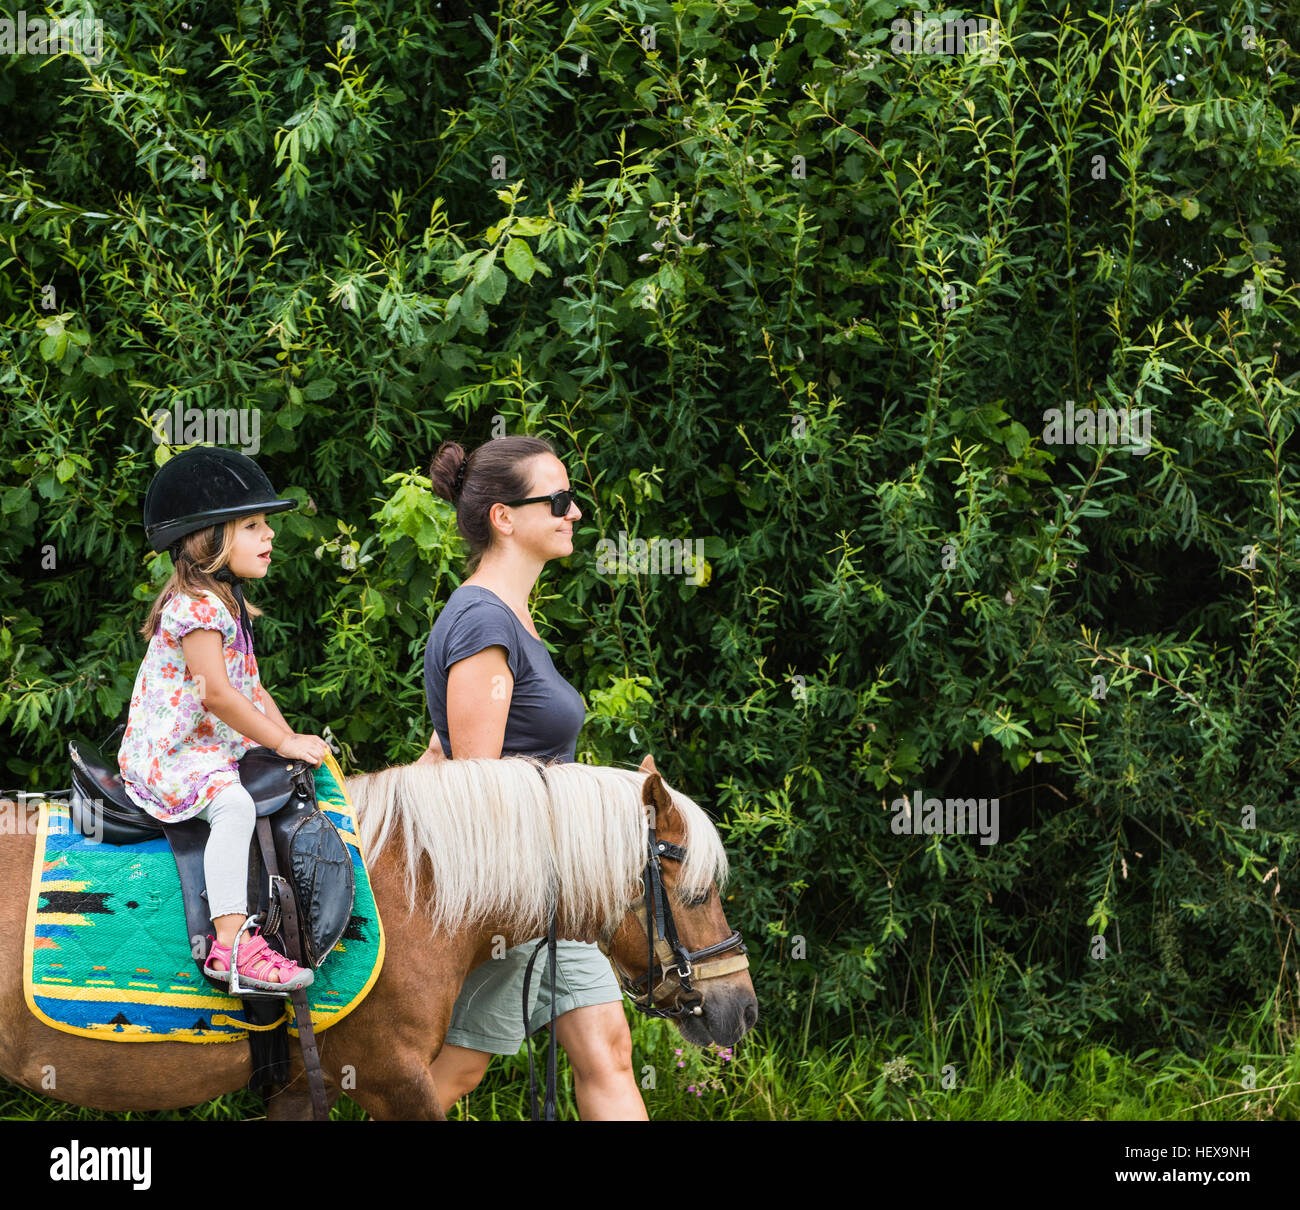 Side view of mother guiding daughter riding horse - Stock Image